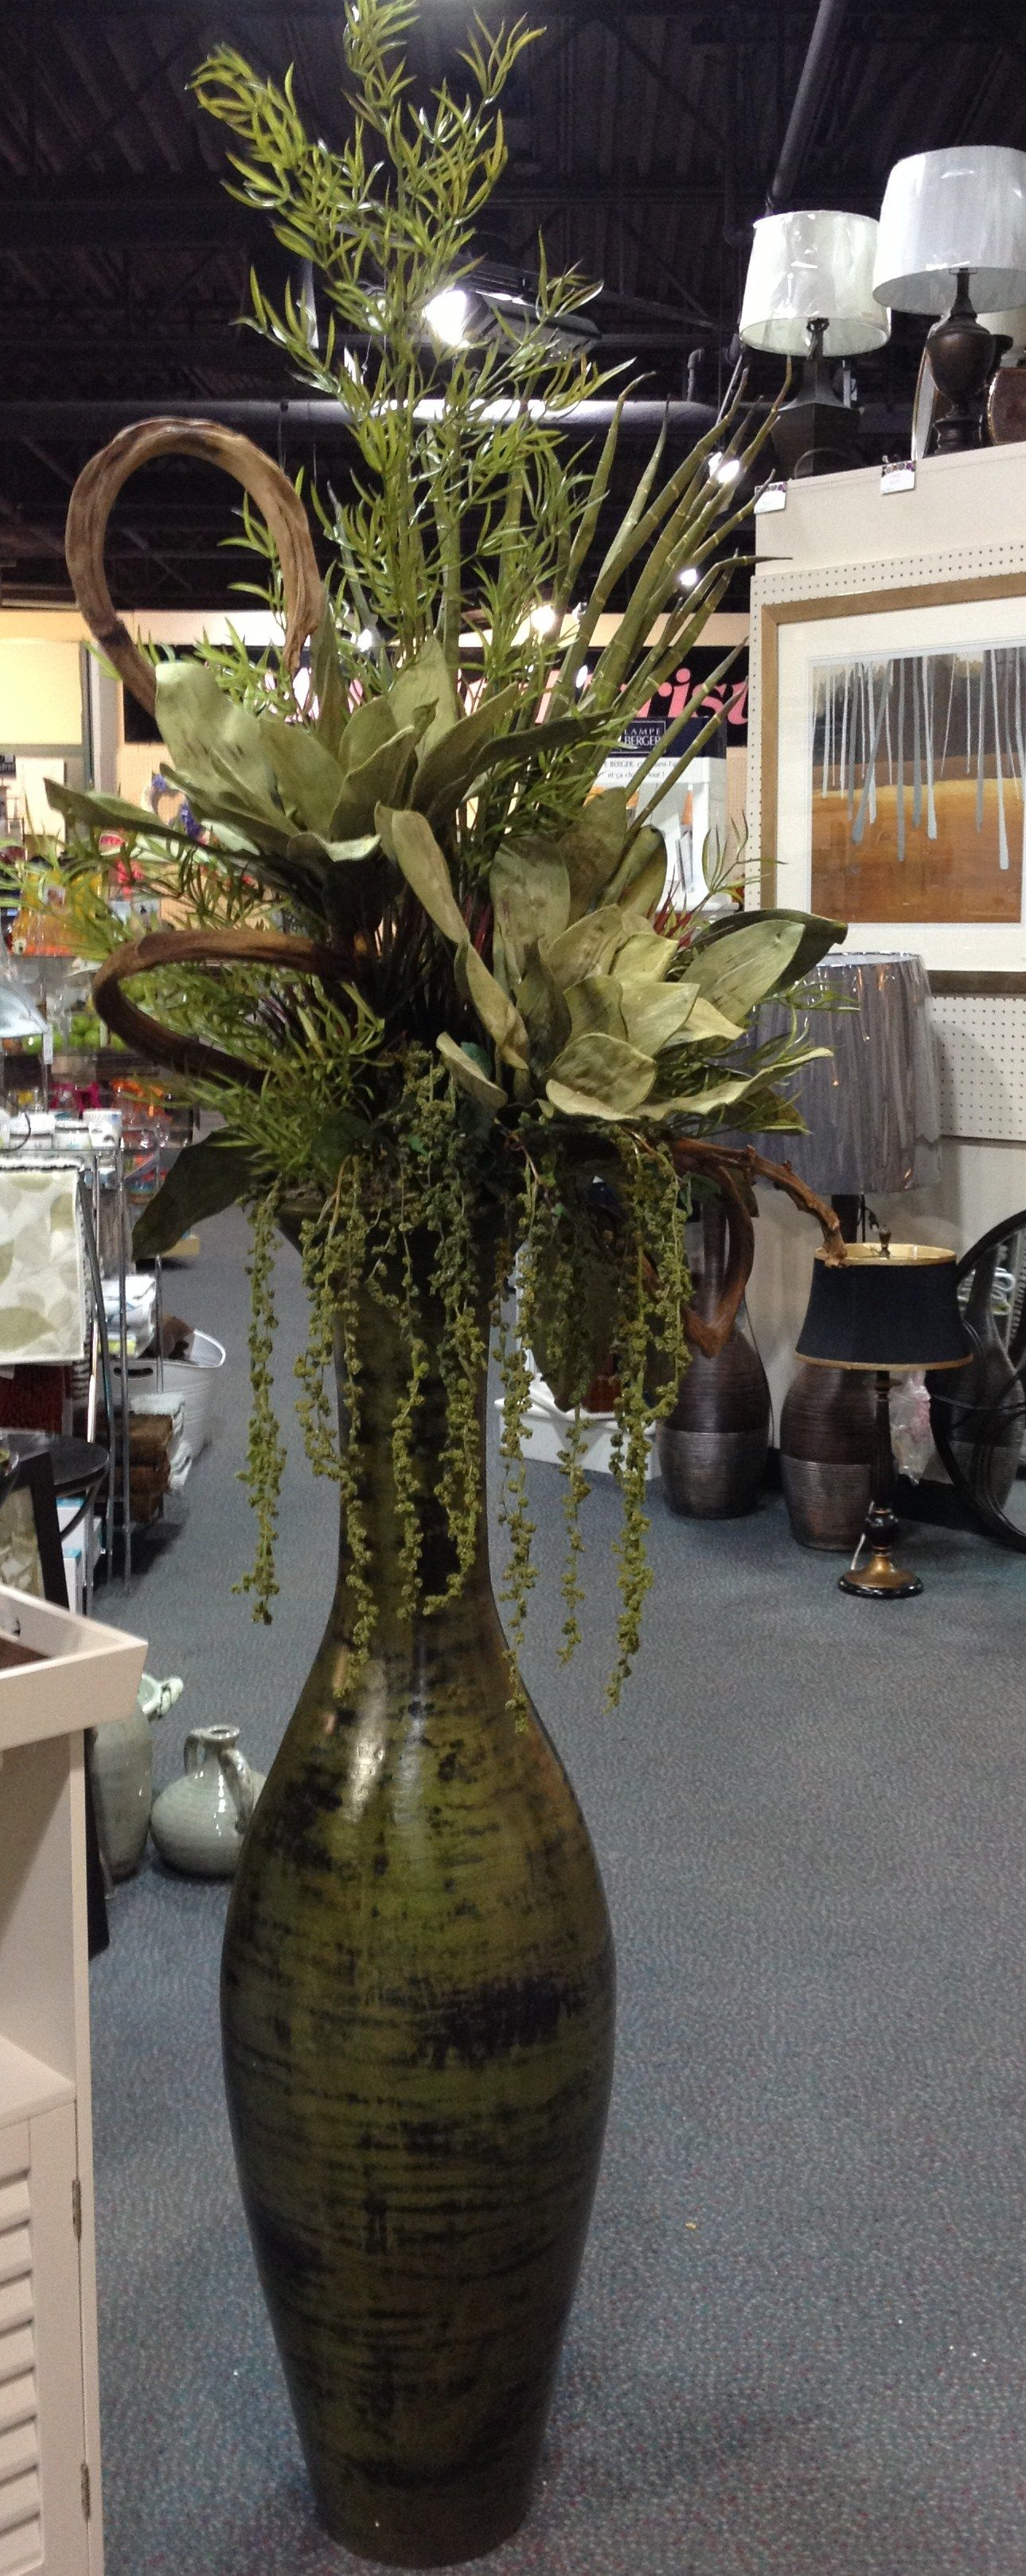 Pin By Leslie Bradshaw On My Design Capture Large Vases Decor Large Floor Vase Flower Vase Arrangements